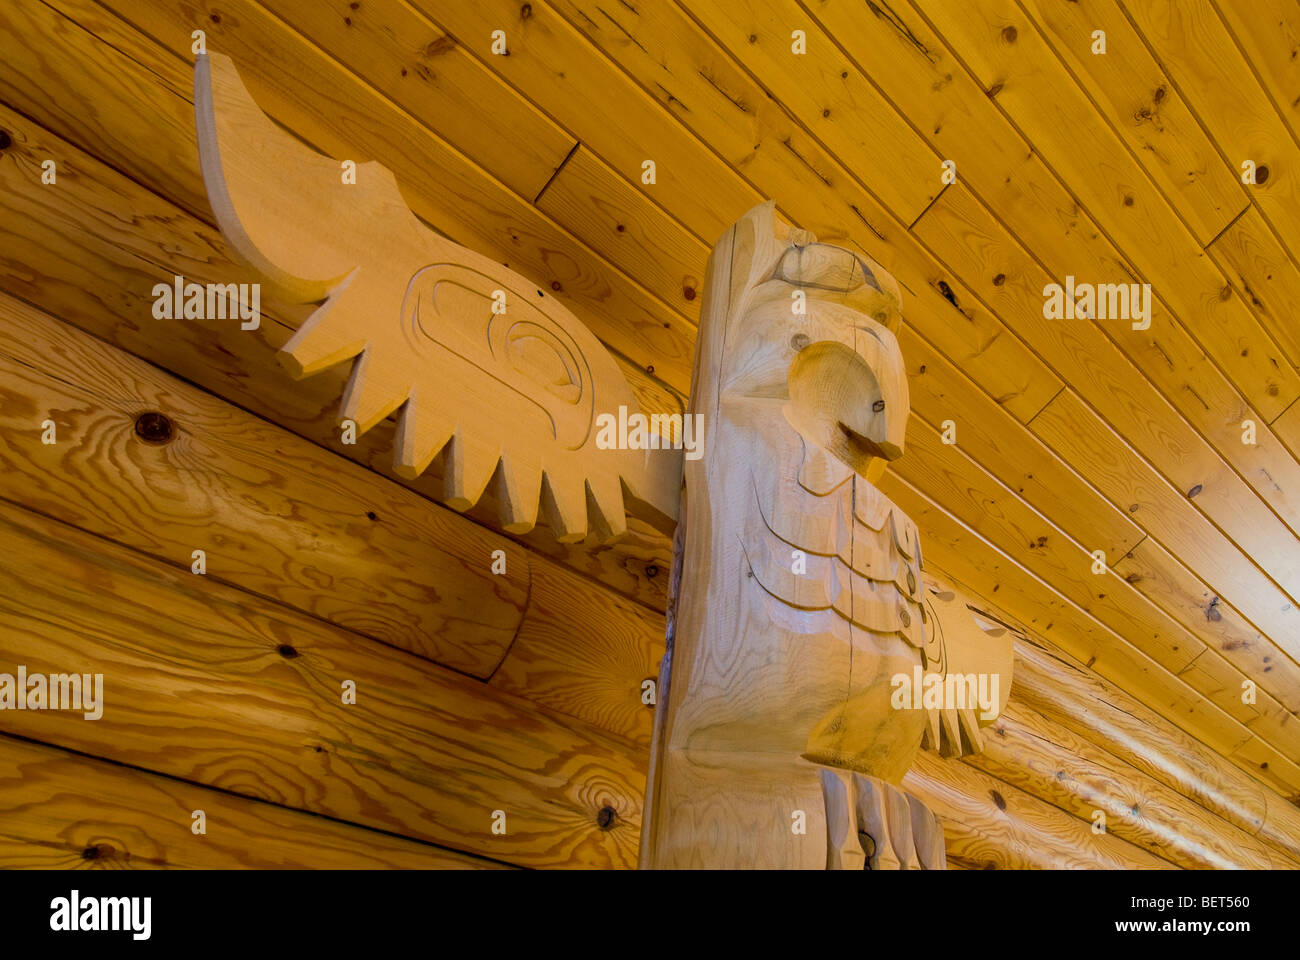 Detail of unpainted totem pole in log cabin interior, International Falls, Minnesota, USA - Stock Image